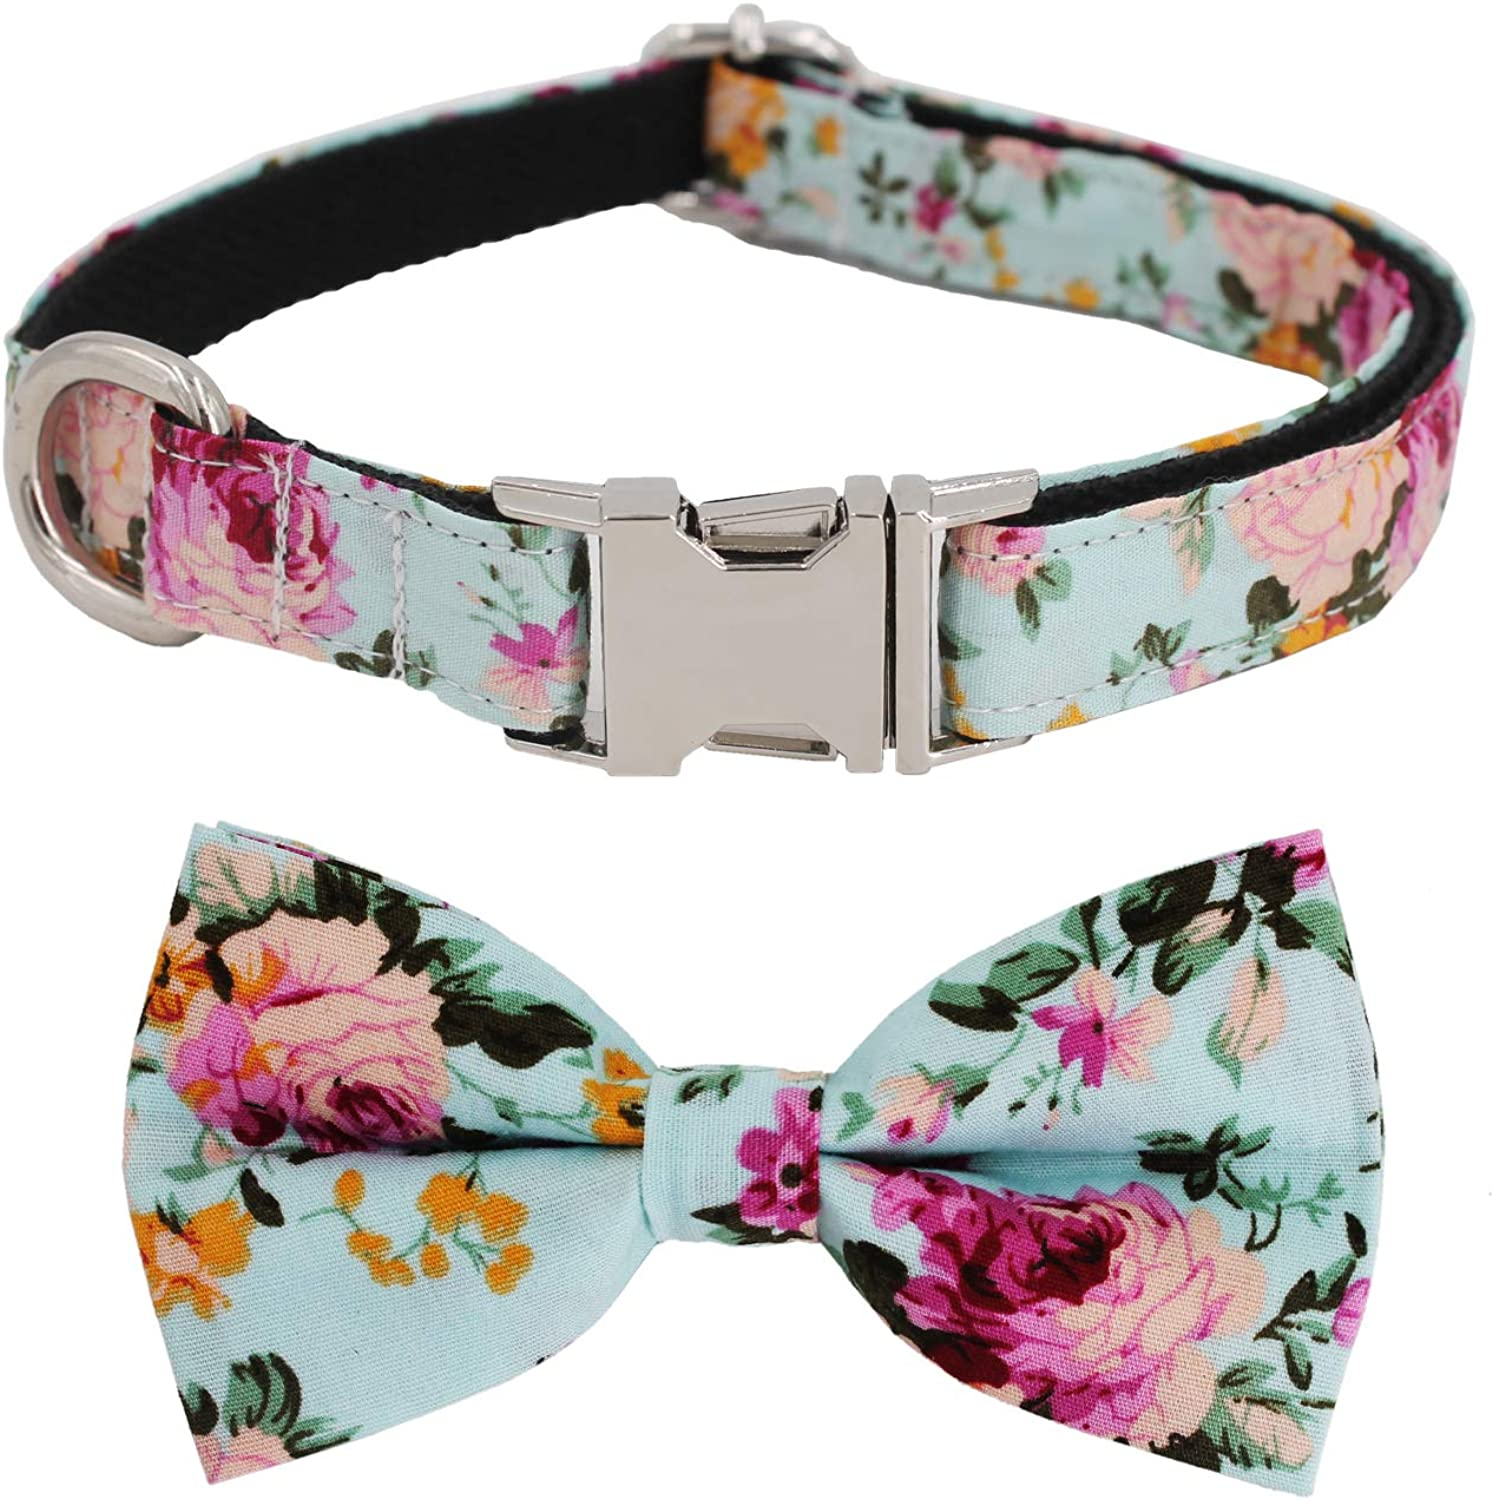 Free Sunday Vintage bluee Floral Dog Bow Tie Dog Colla for Small Dog, Medium Dog, Large Dog (bluee Floral, L(14''23'' Length))